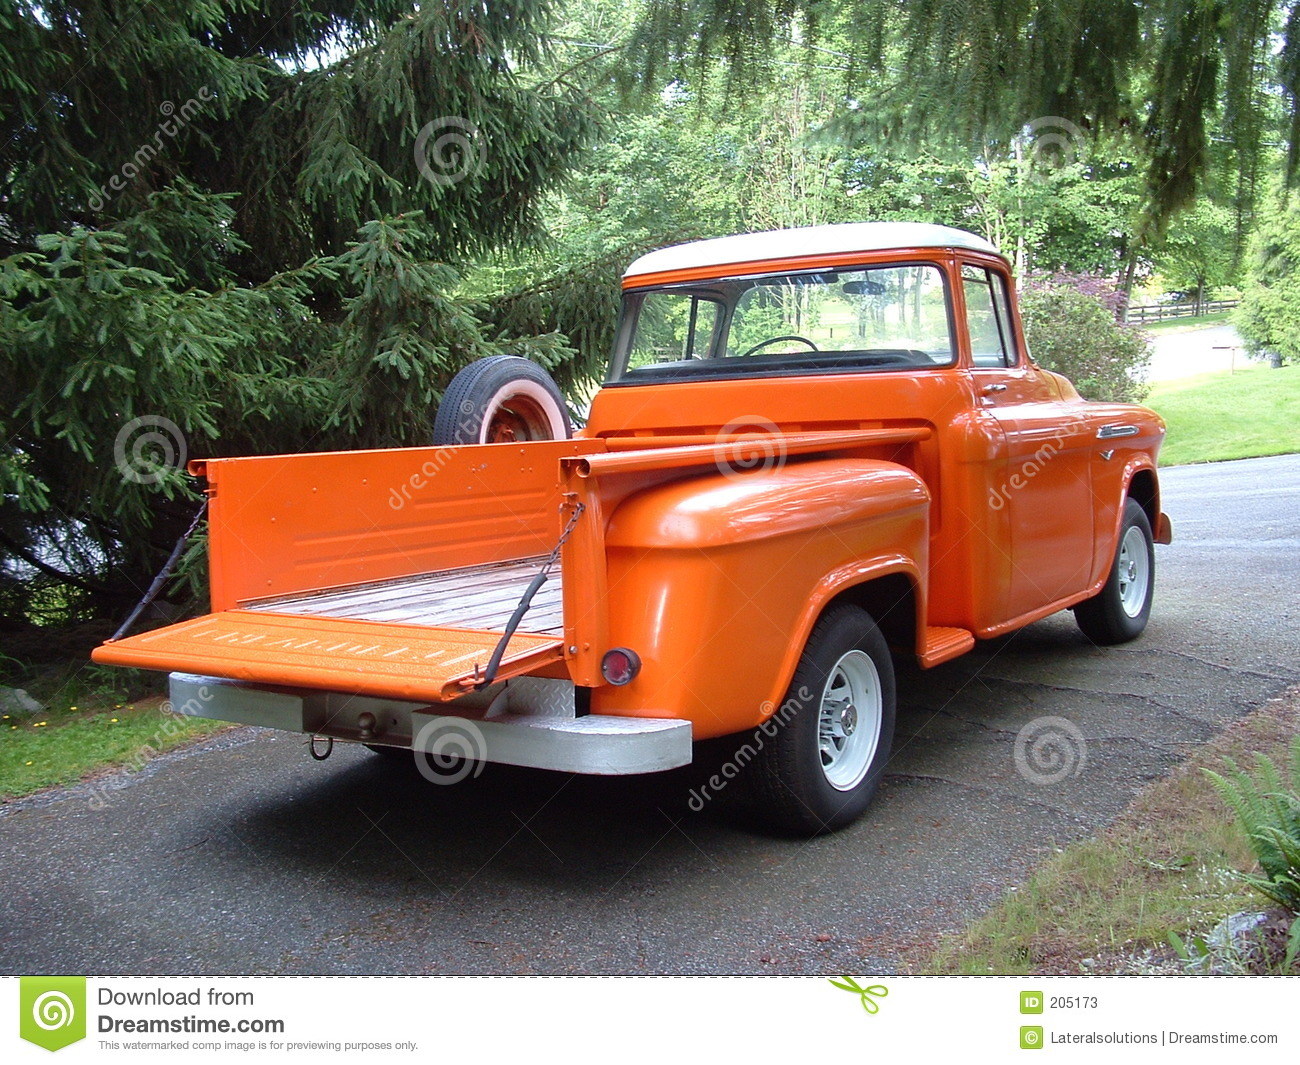 Classic Car Wallpaper 57 Chevy 56 Chevy Rear Stock Image Image Of Truck Auto Hotrod